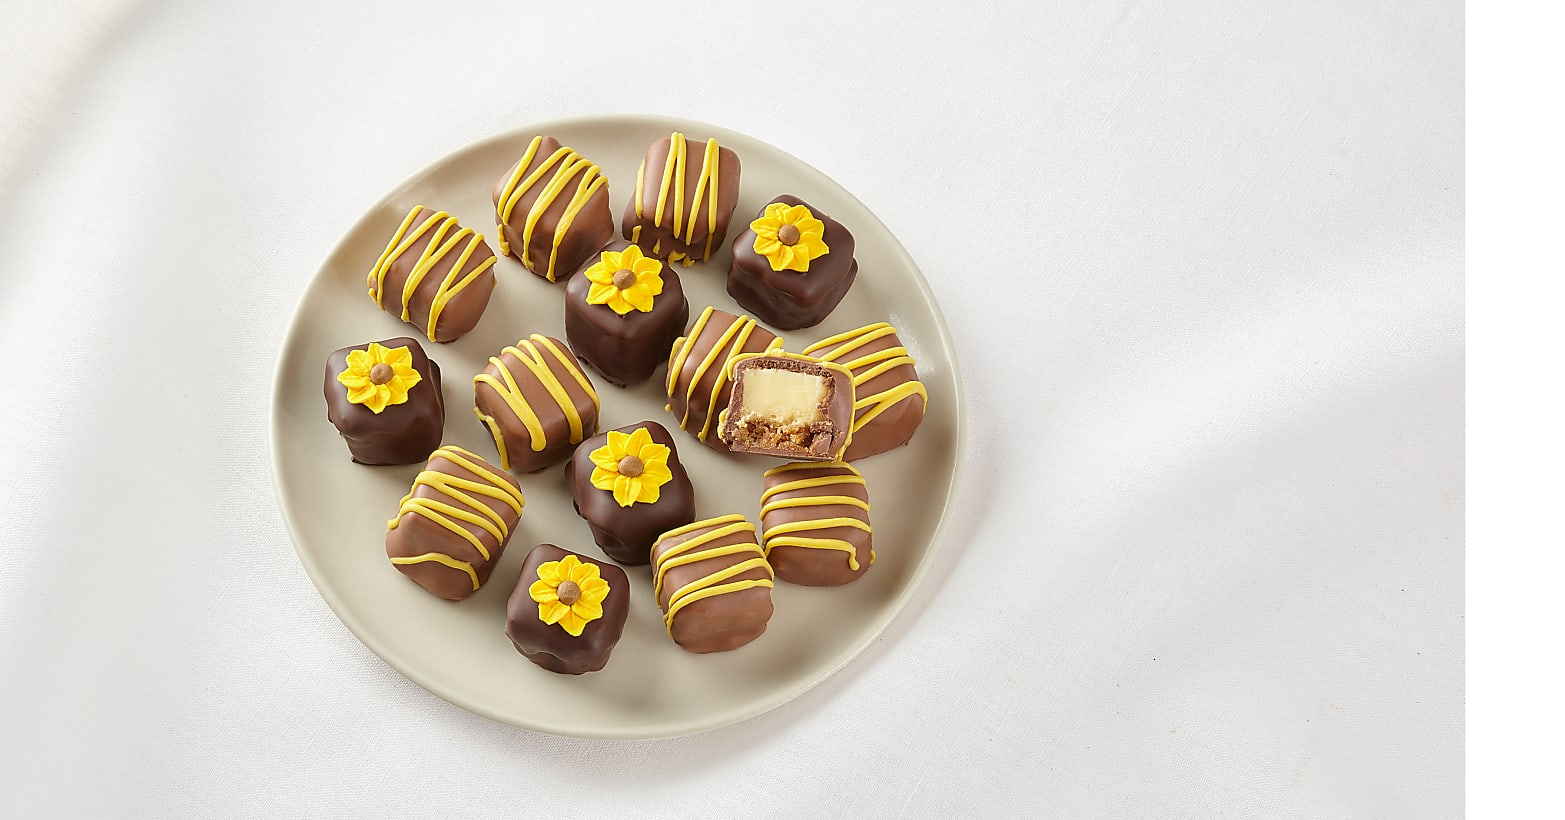 Sunny Days Belgian Chocolate-Covered Cheesecake Bites - Image 2 Of 2